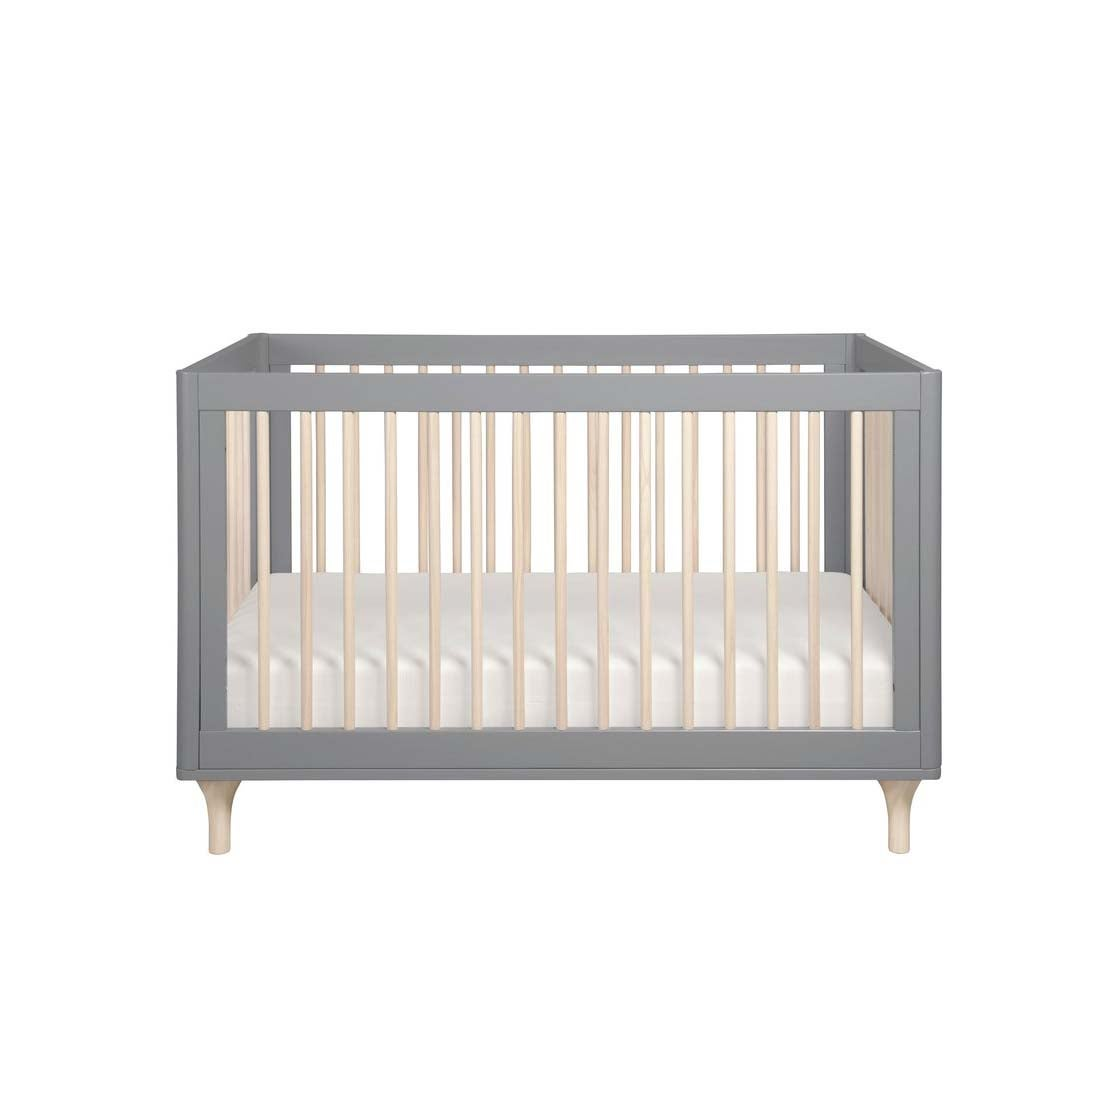 The-Best-Baby-Crib-Option-Babyletto-Lolly-Crib